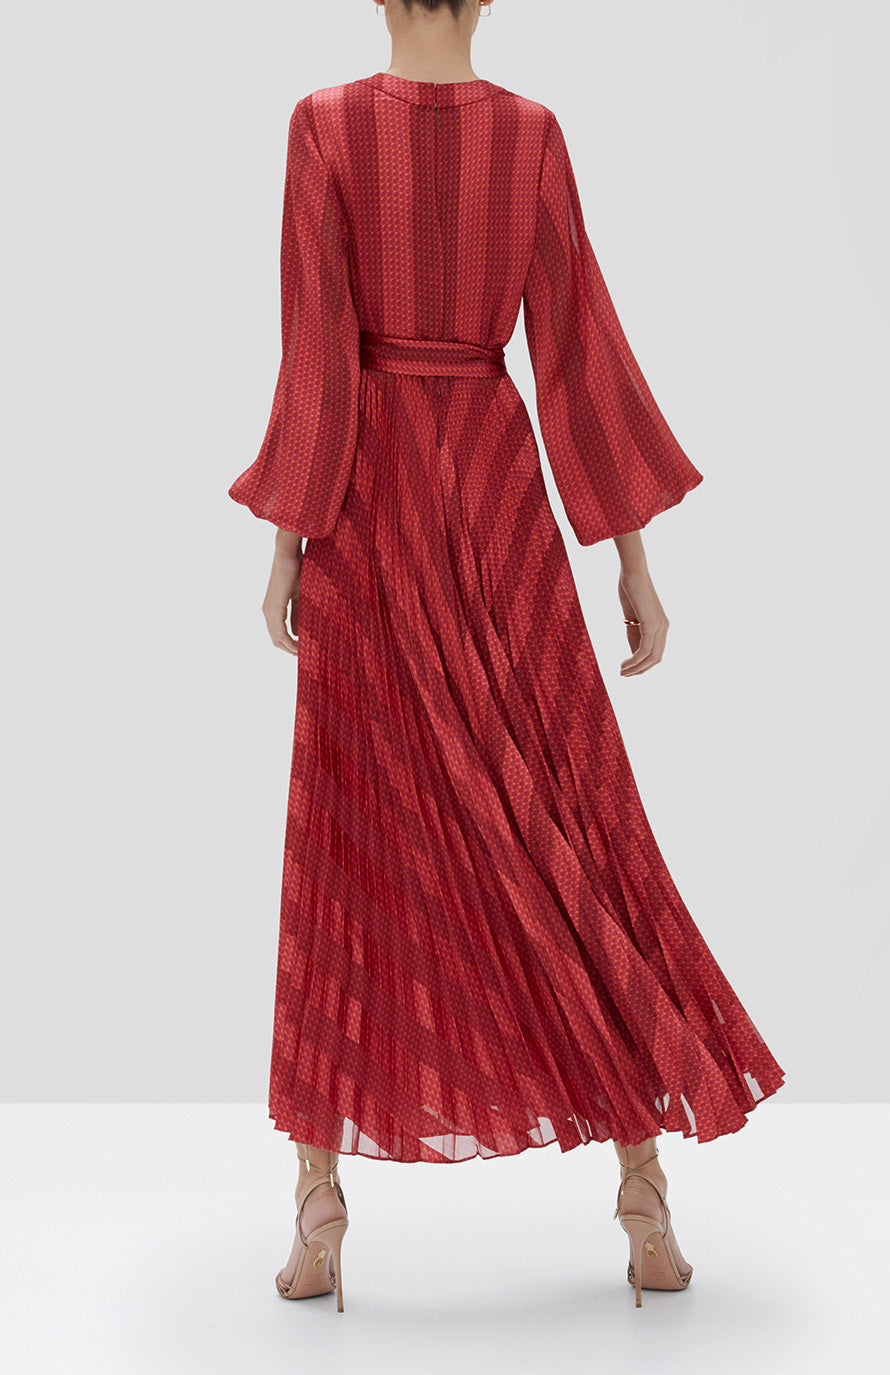 Alexis Salomo Dress in Red Geo Stripes from the Fall Winter 2019 Ready To Wear Collection - Rear View